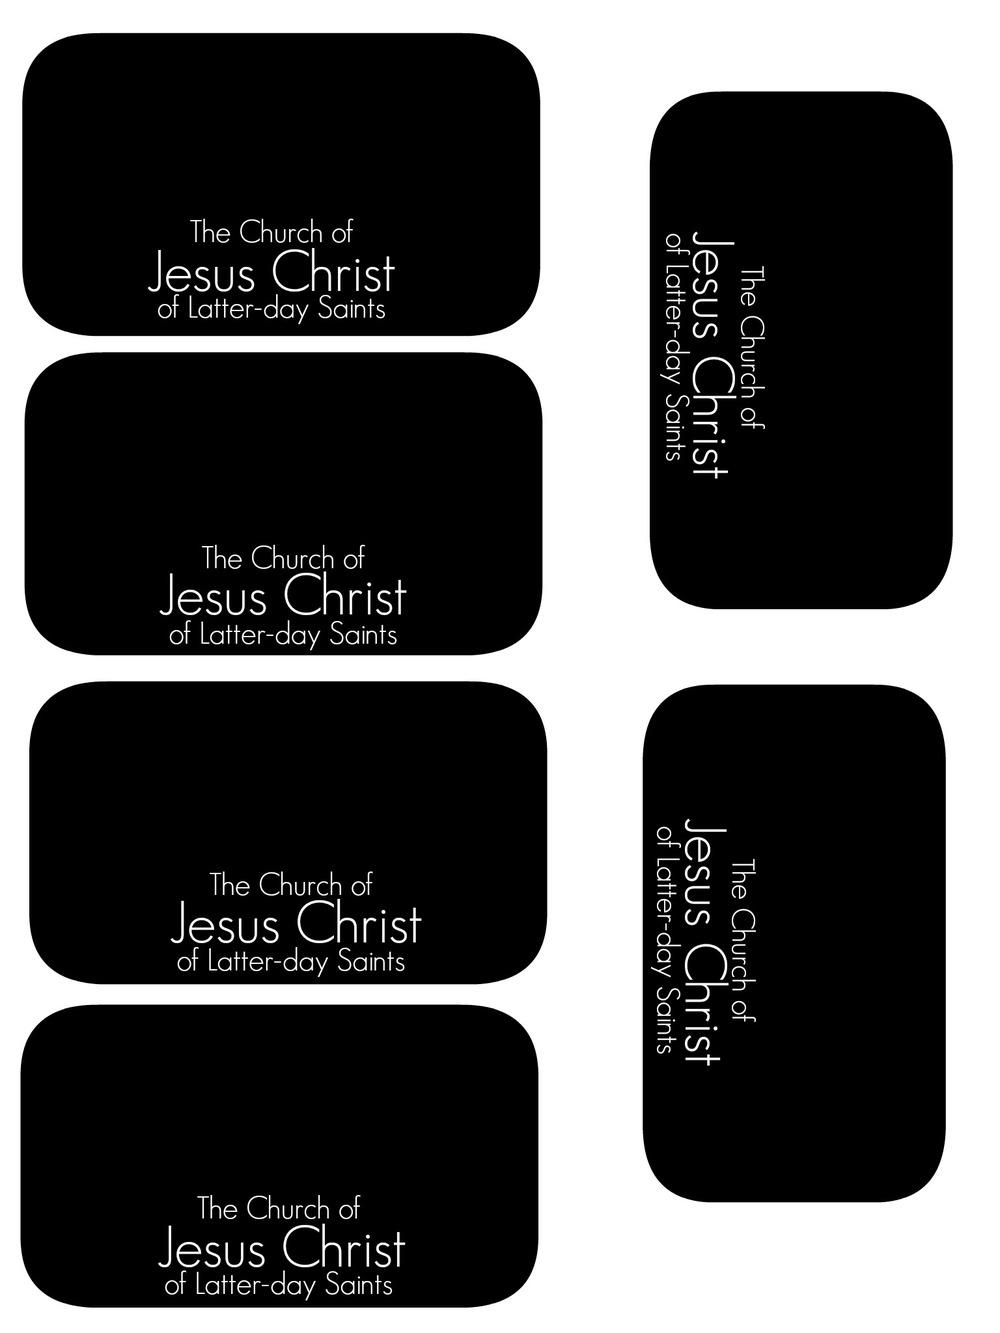 mormon missionary name tag template - primary 2 lesson 11 chicken scratch n sniff